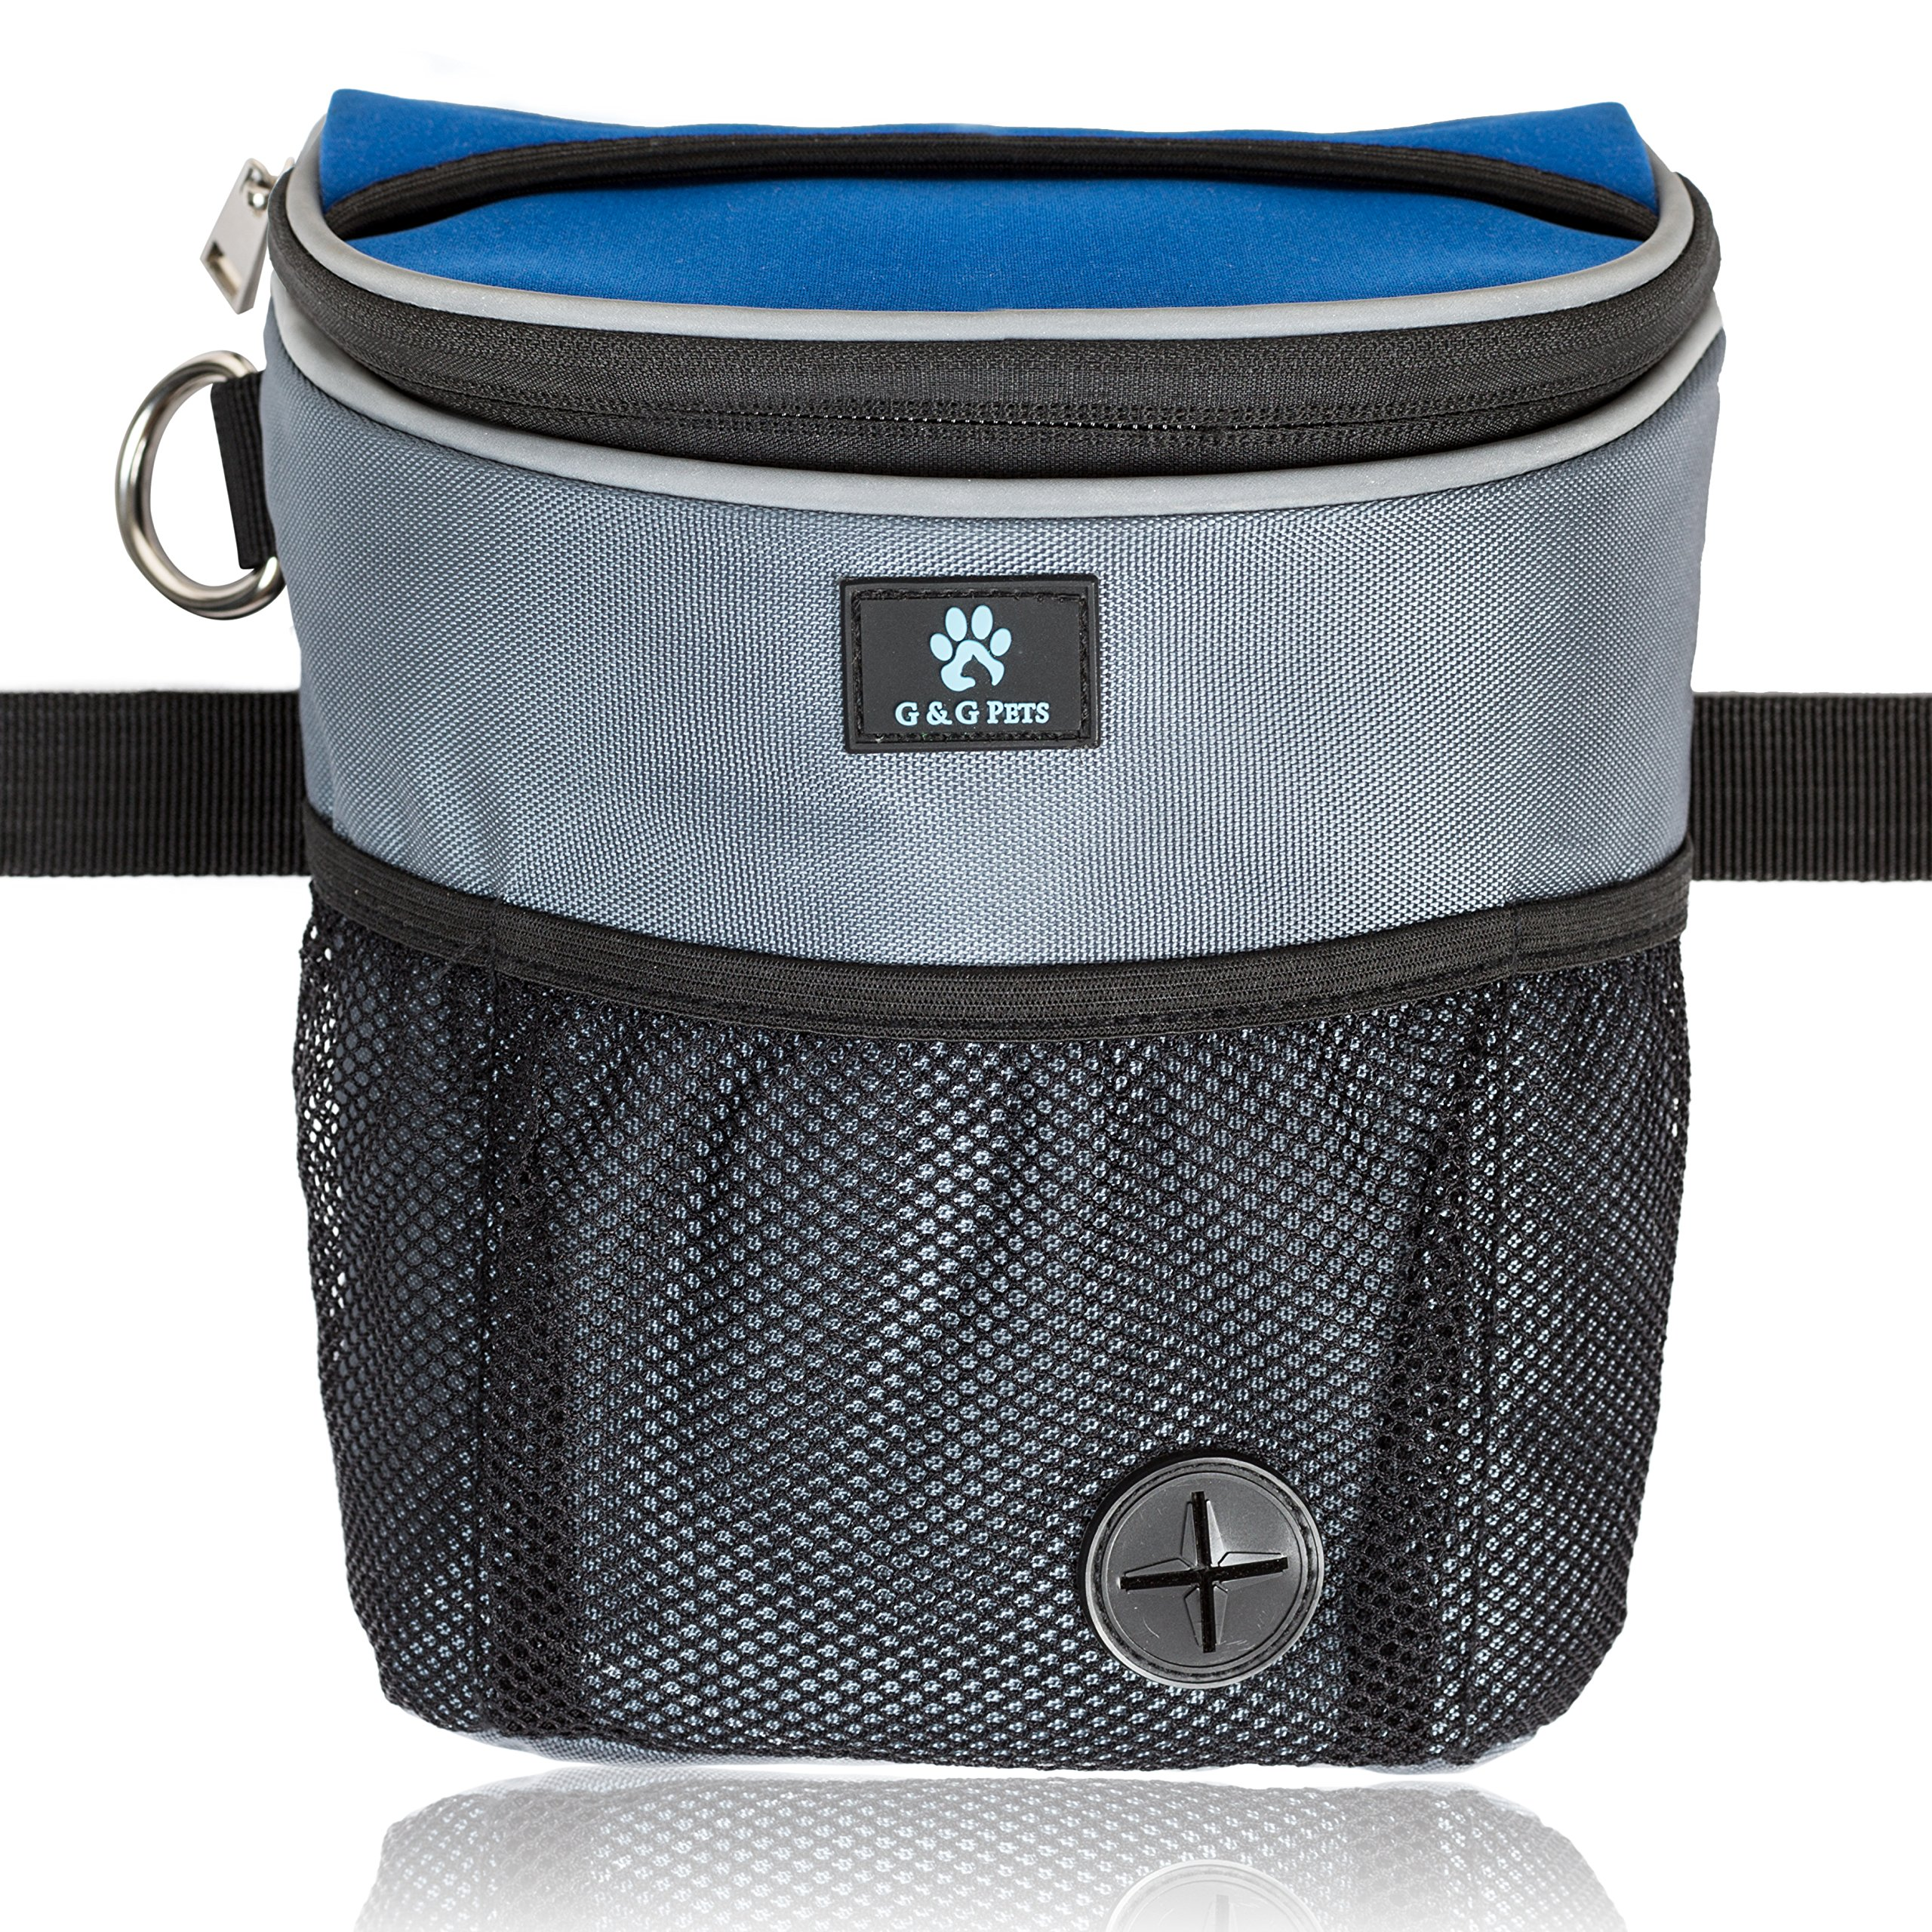 G&G Pets – Large Dog Treat Pouch Obedience Agility Training - Includes Adjustable Waist Belt, Waste Bags Dispenser Complimentary Roll Poop Bags - Hands-free Easy Access to Rewards